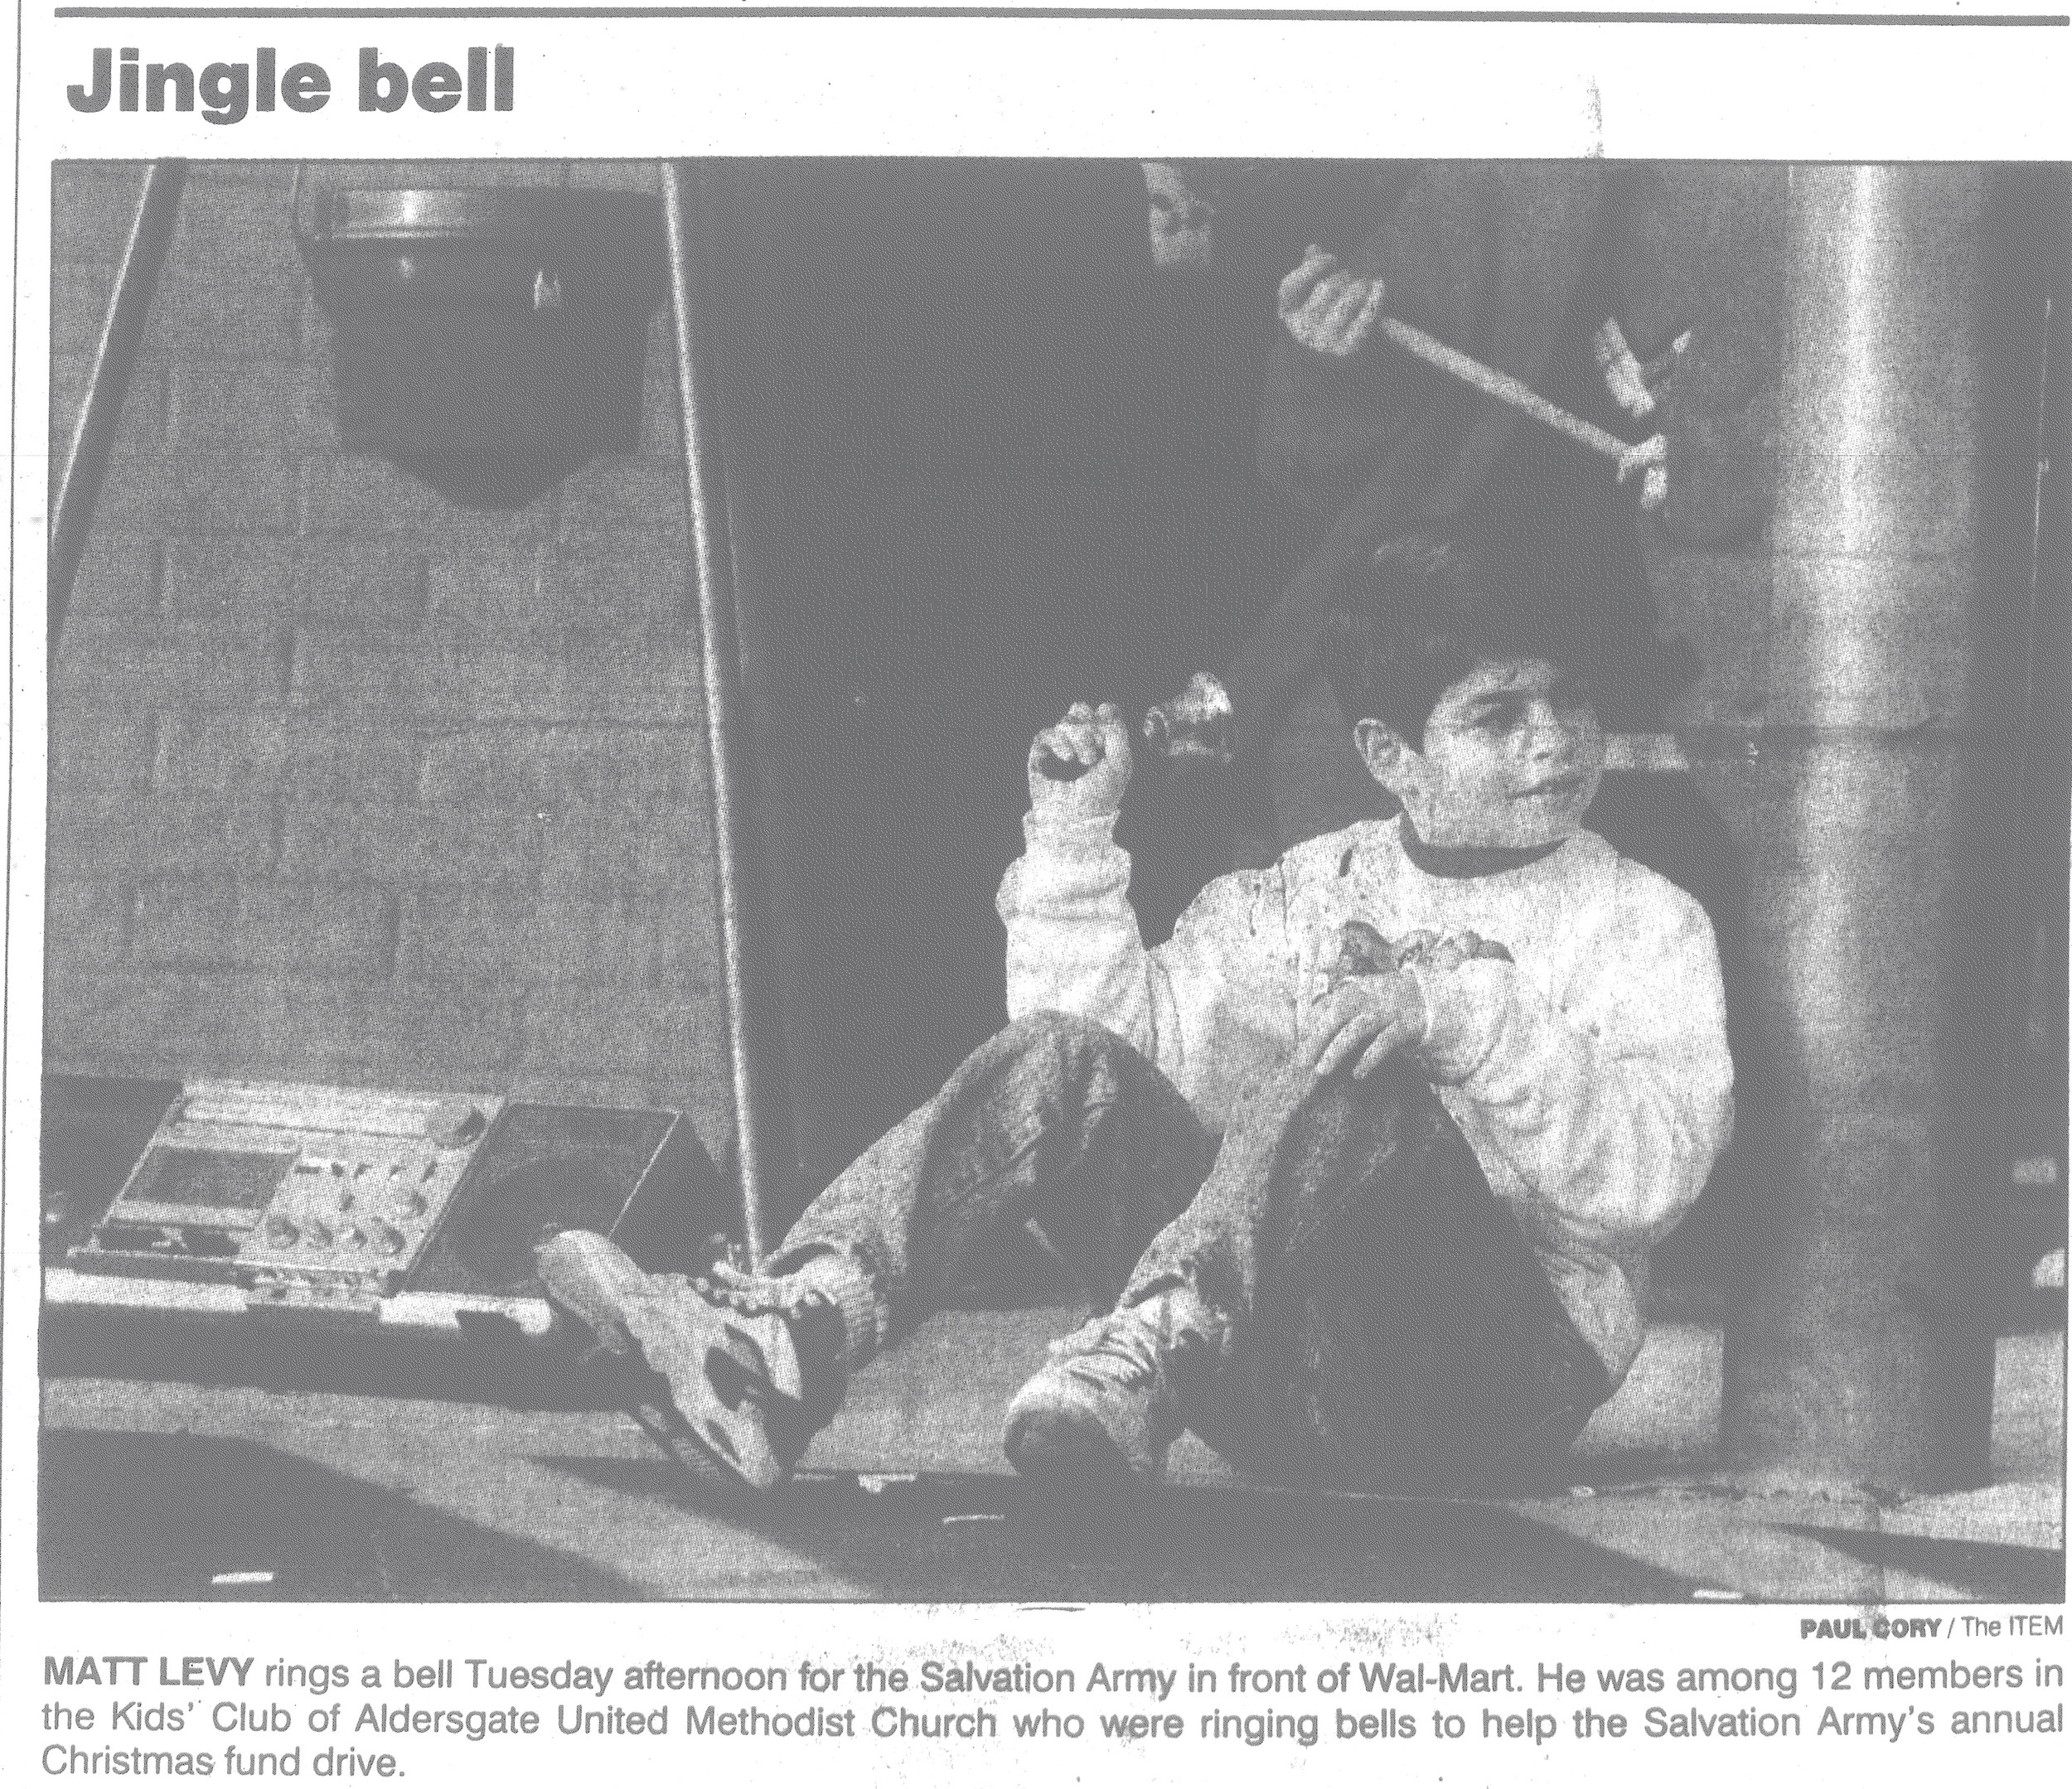 Matt Levy rings a bell Tuesday afternoon for the Salvation Army in front of Walmart in 1992. He was among 12 members of the Kids' Club of Aldersgate Methodist Church who were ringing bells to help the Salvation Army's annual Christmas fund drive.